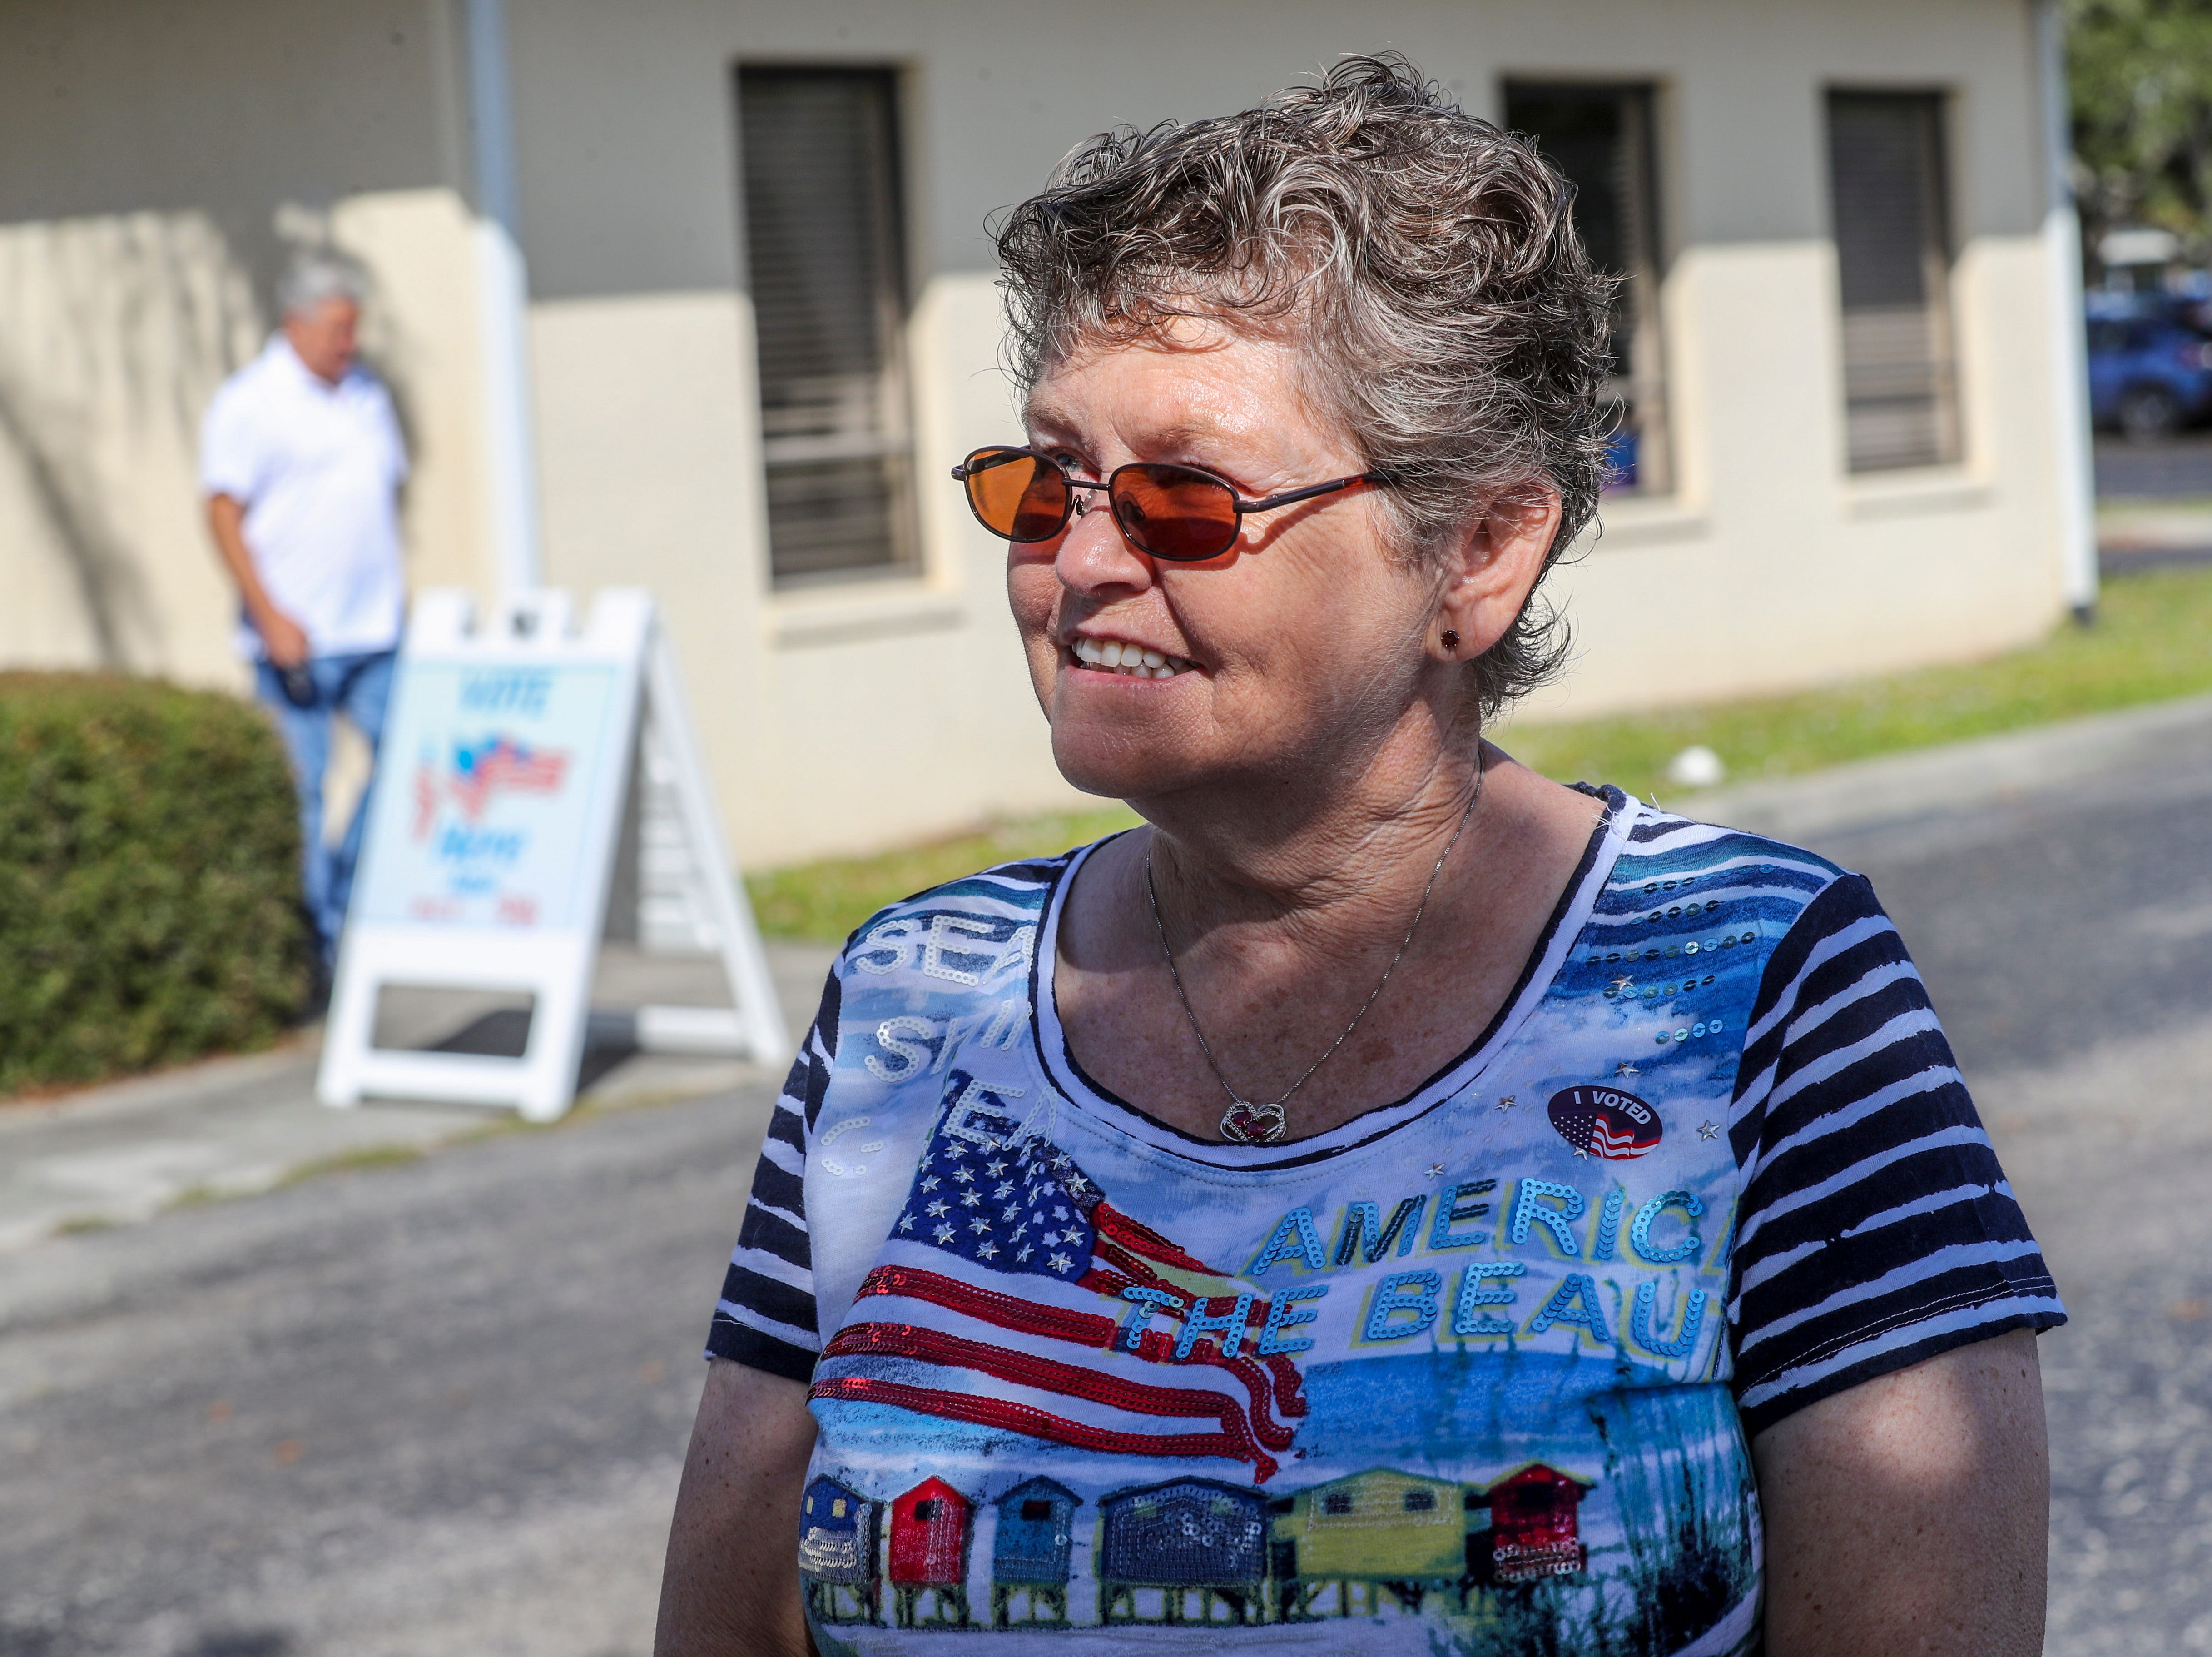 Water quality was a very big issue for Patricia Jarvis. She talked about why she voted today after voting in person at Precinct 98 in Cape Coral.